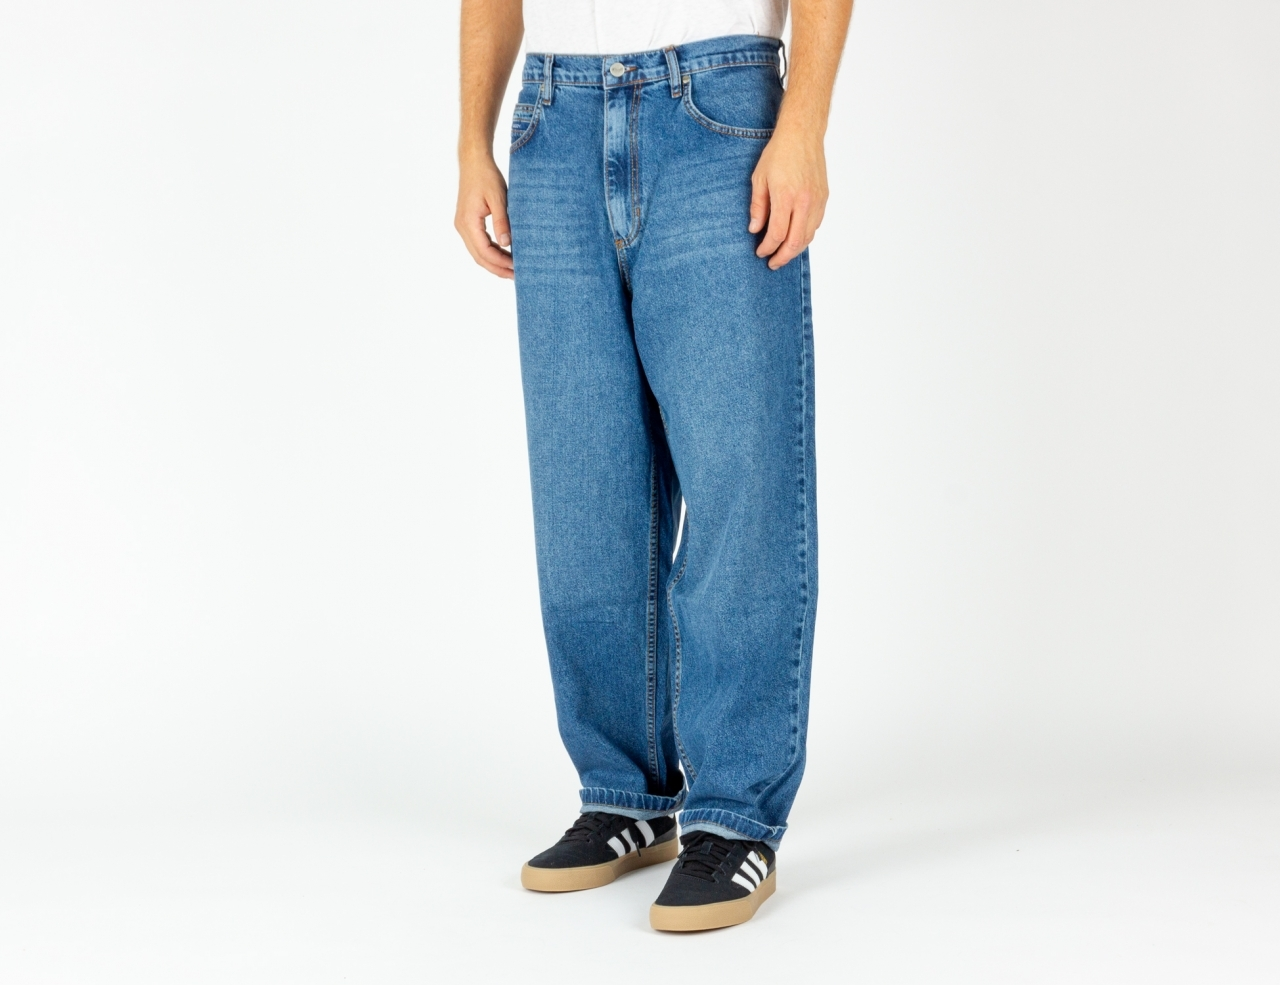 Reell Jeans Baggy Jeans - Faded Mid Blue